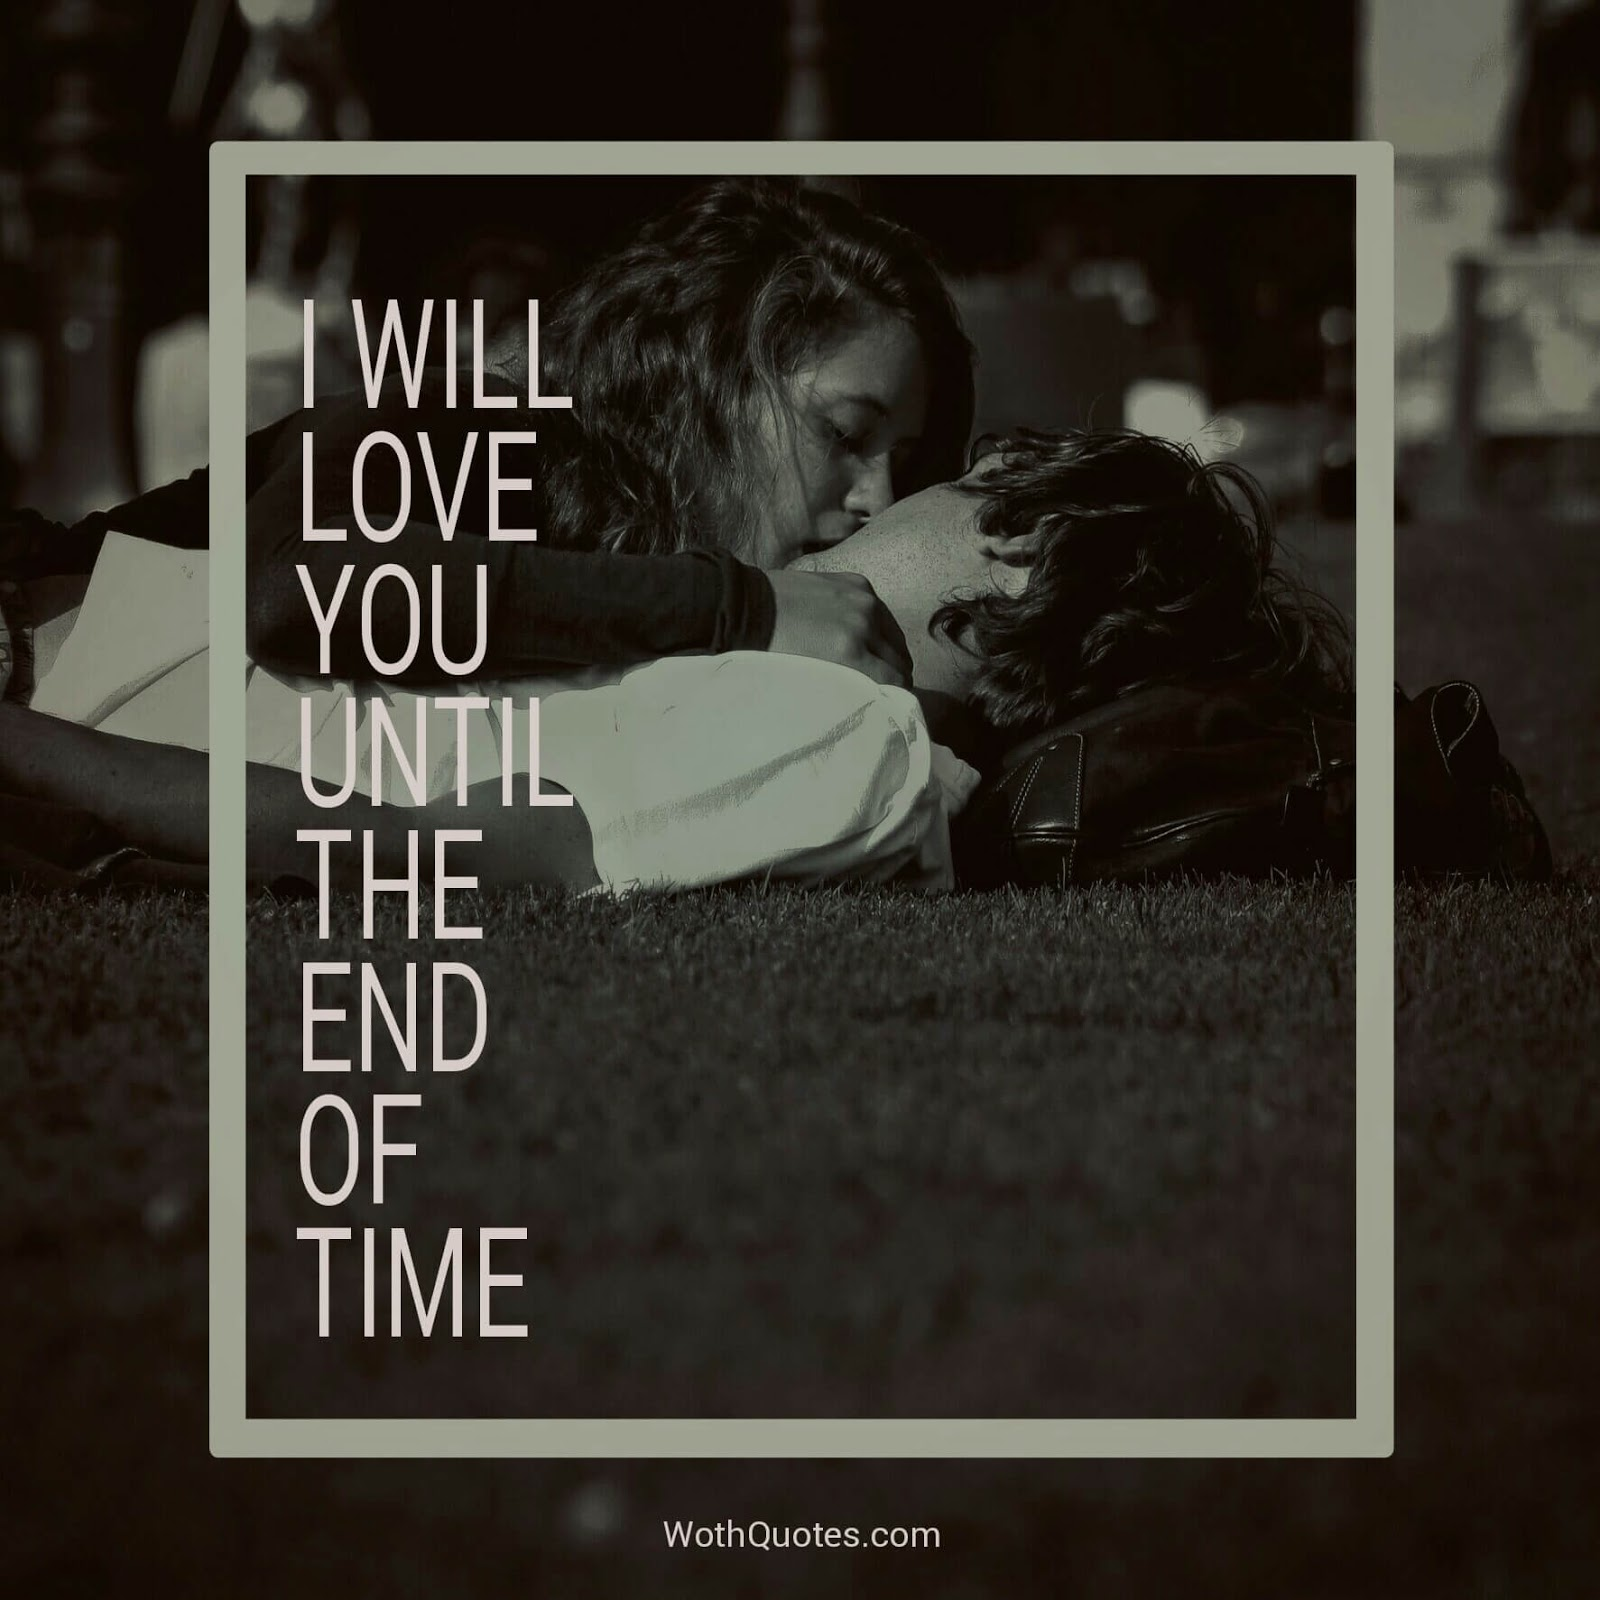 Quotes About True Love True Love Quotes  Top Love Quotes  Wothquotes Collection